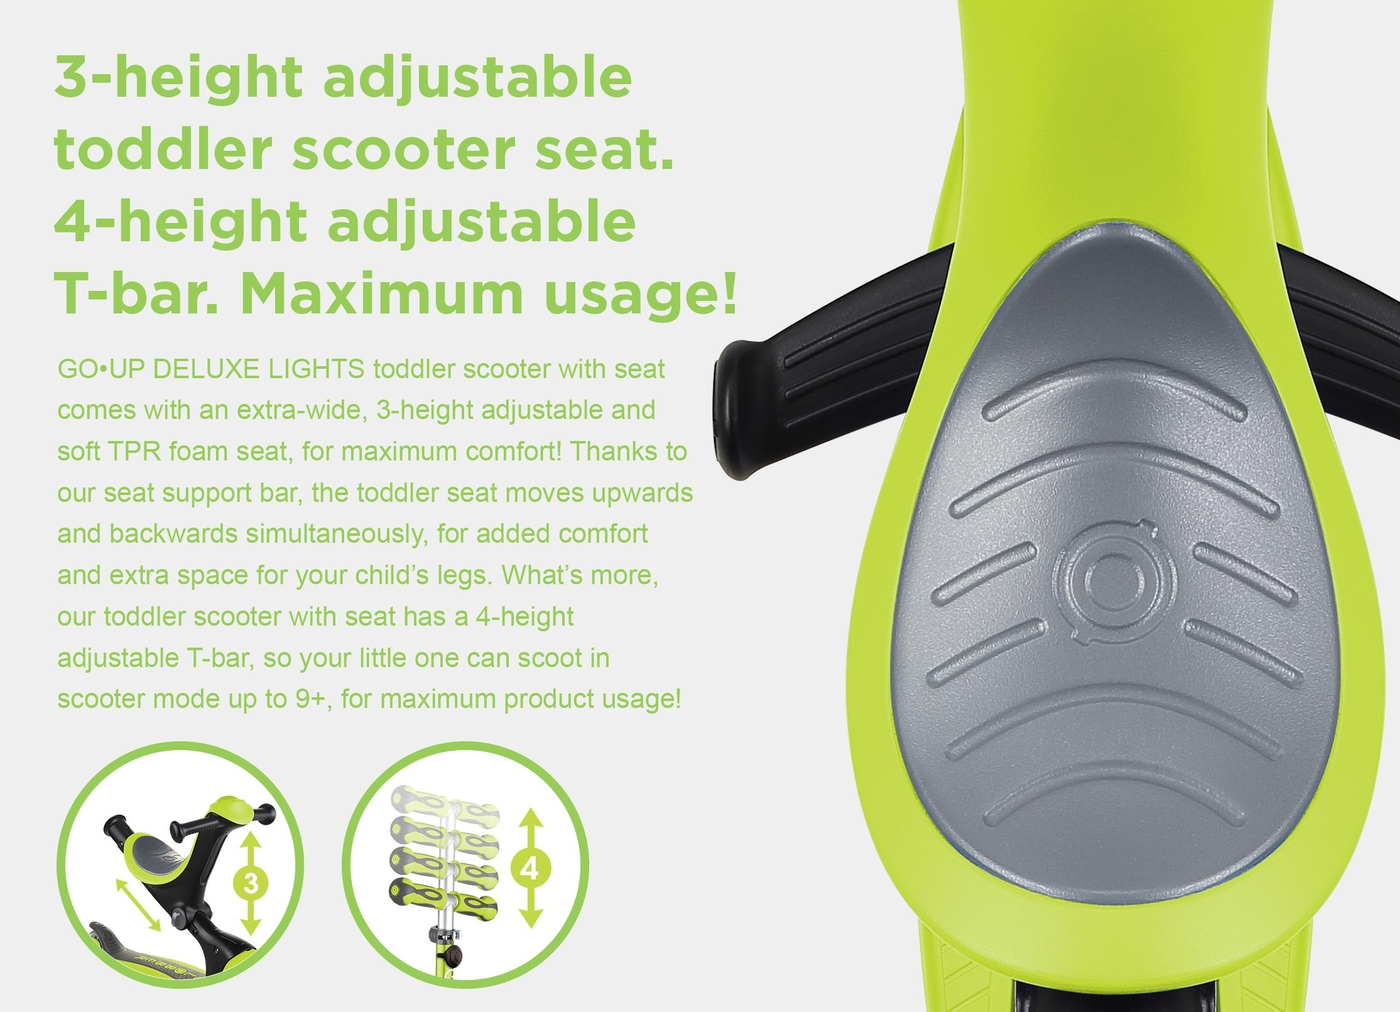 3-height adjustable toddler scooter seat. 4-height adjustable T-bar. Maximum usage! GO•UP DELUXE LIGHTS toddler scooter with seat comes with an extra-wide, 3-height adjustable and soft TPR foam seat, for maximum comfort! Thanks to our seat support bar, the toddler seat moves upwards and backwards simultaneously, for added comfort and extra space for your child's legs. What's more, our toddler scooter with seat has a 4-height adjustable T-bar, so your little one can scoot in scooter mode up to 9+, for maximum product usage!